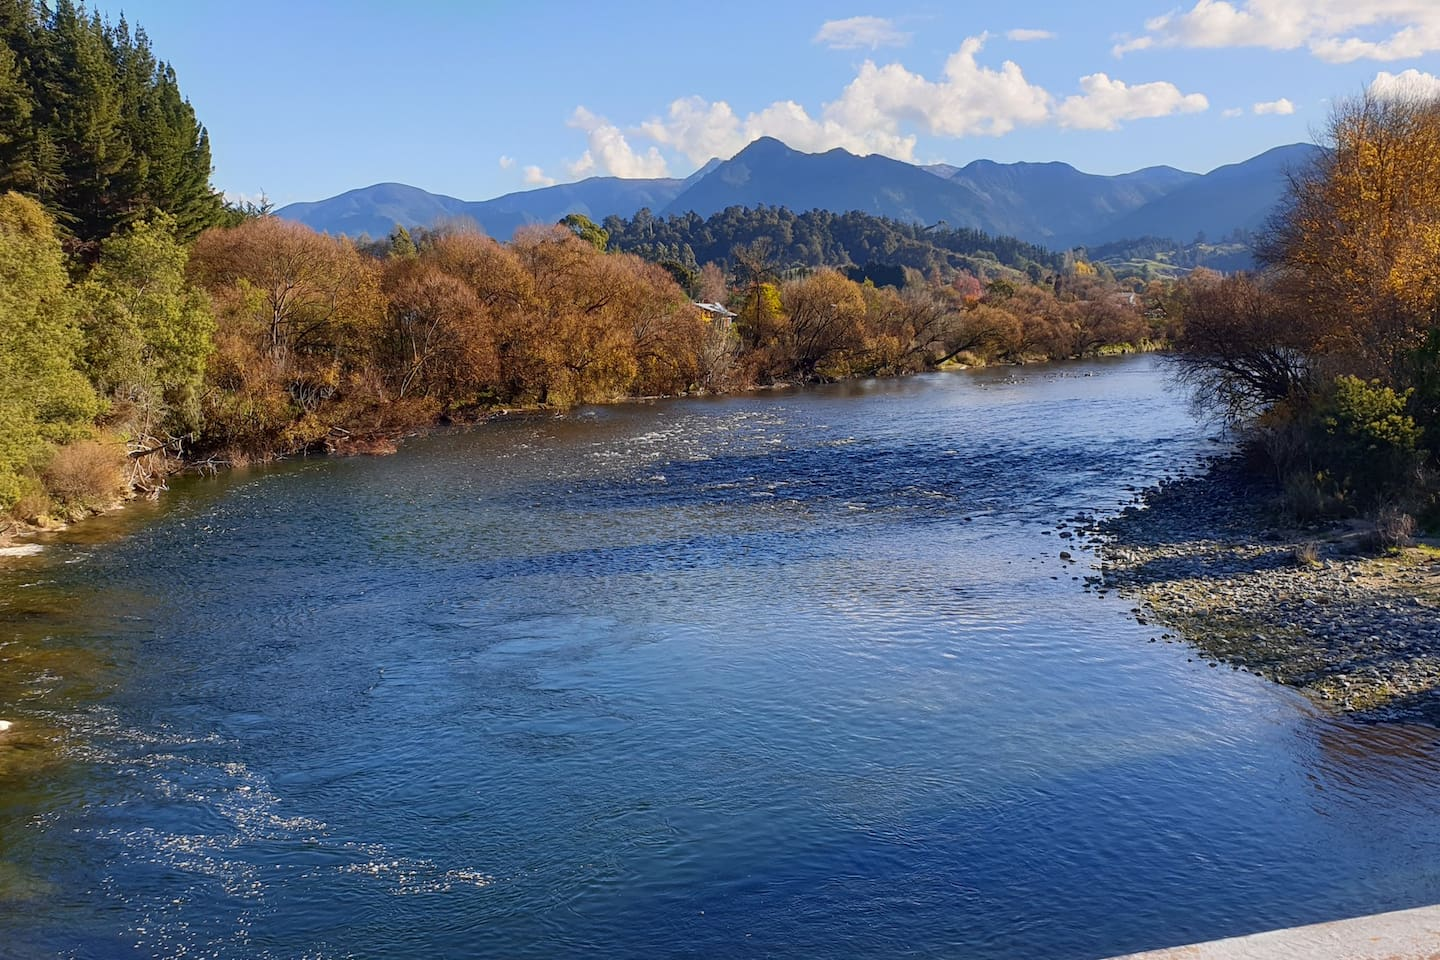 Motueka River - across the road from DUNBAR ESTATES - good fishing, swimming, cycling, walking and simply sitting to enjoy the views and hear the sounds of the water rippling over the stones..